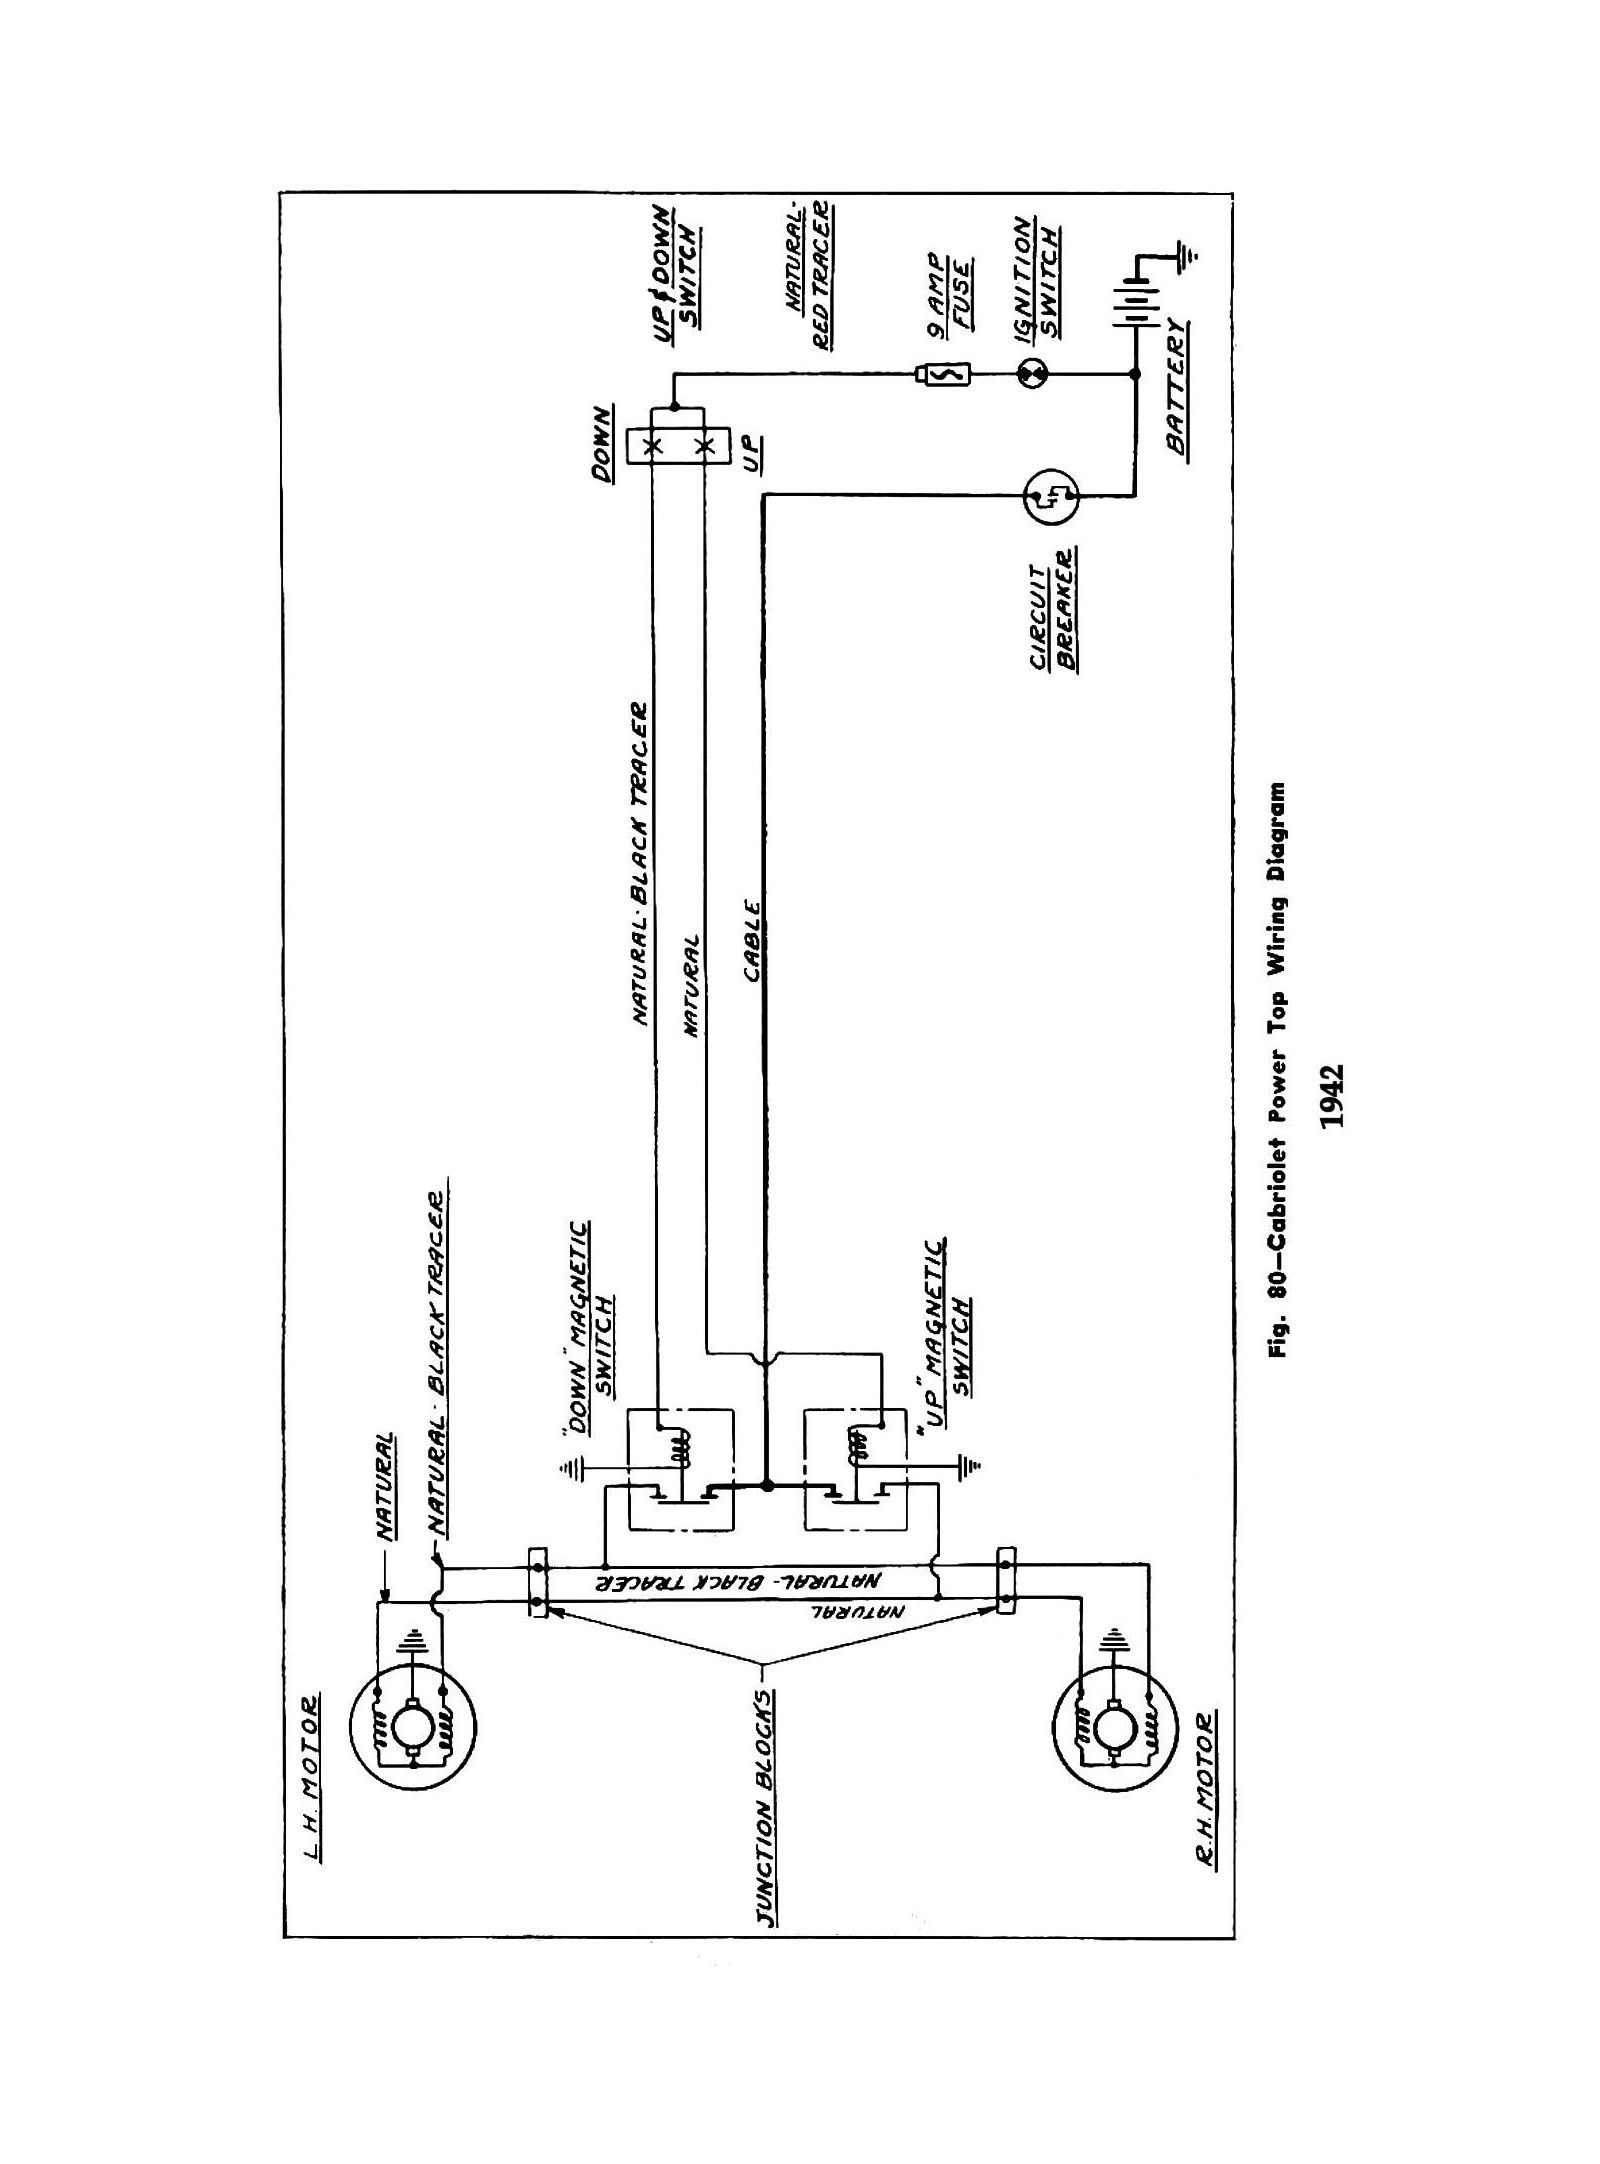 Chevy Wiring Diagrams 2000 Gmc Sierra Blower Motor Diagram 1942 Truck Cabriolet Power Top